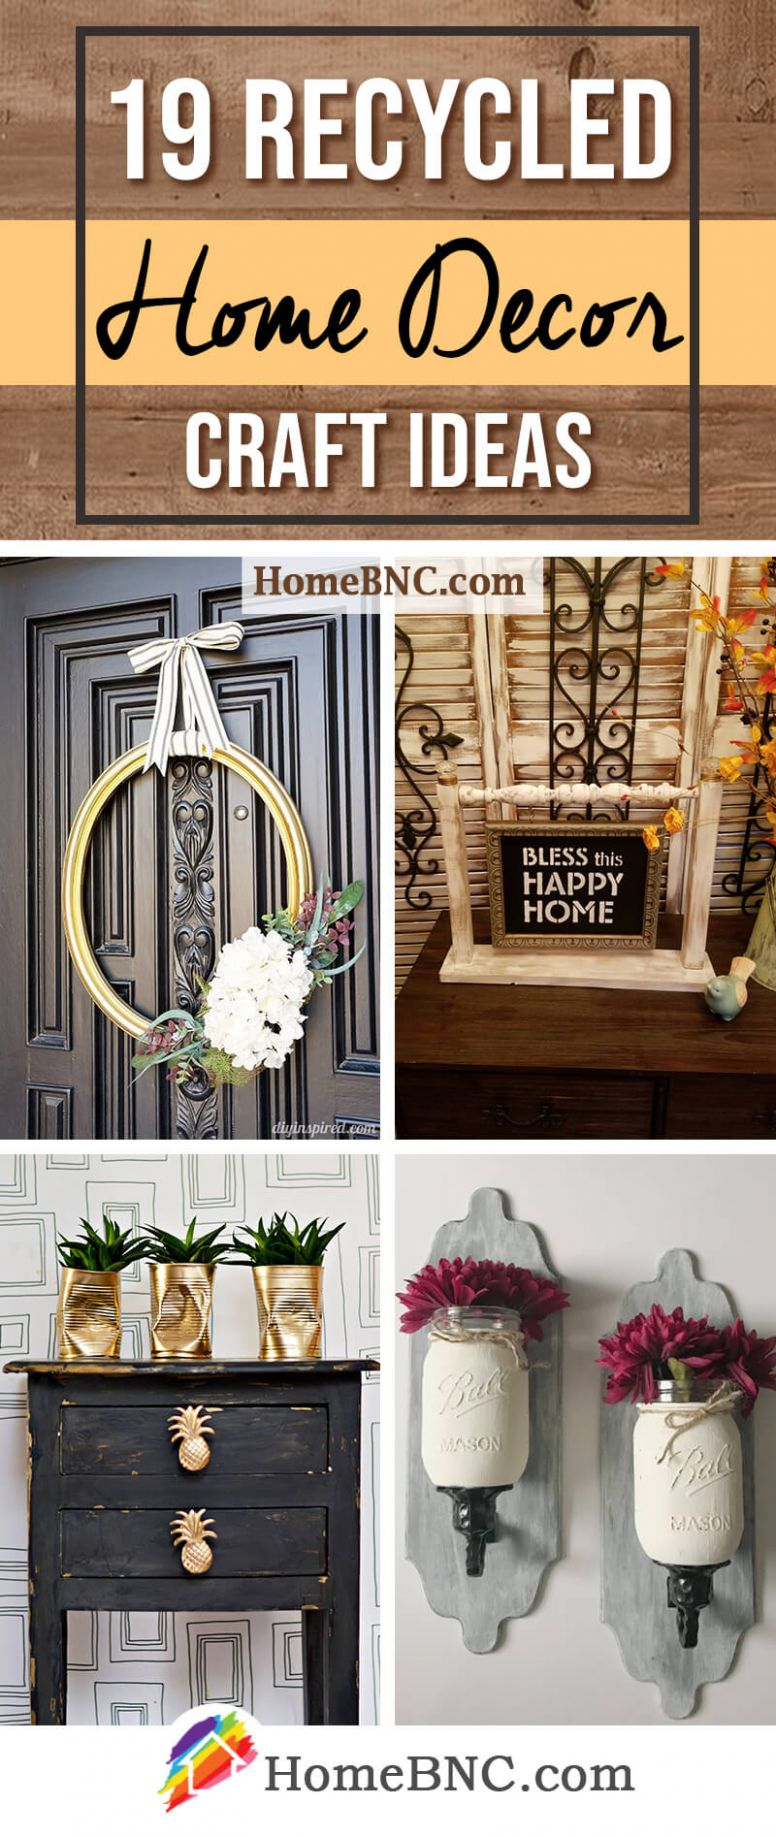 10 Recycled Home Decor Craft Ideas and Projects for 10 - home decor crafts